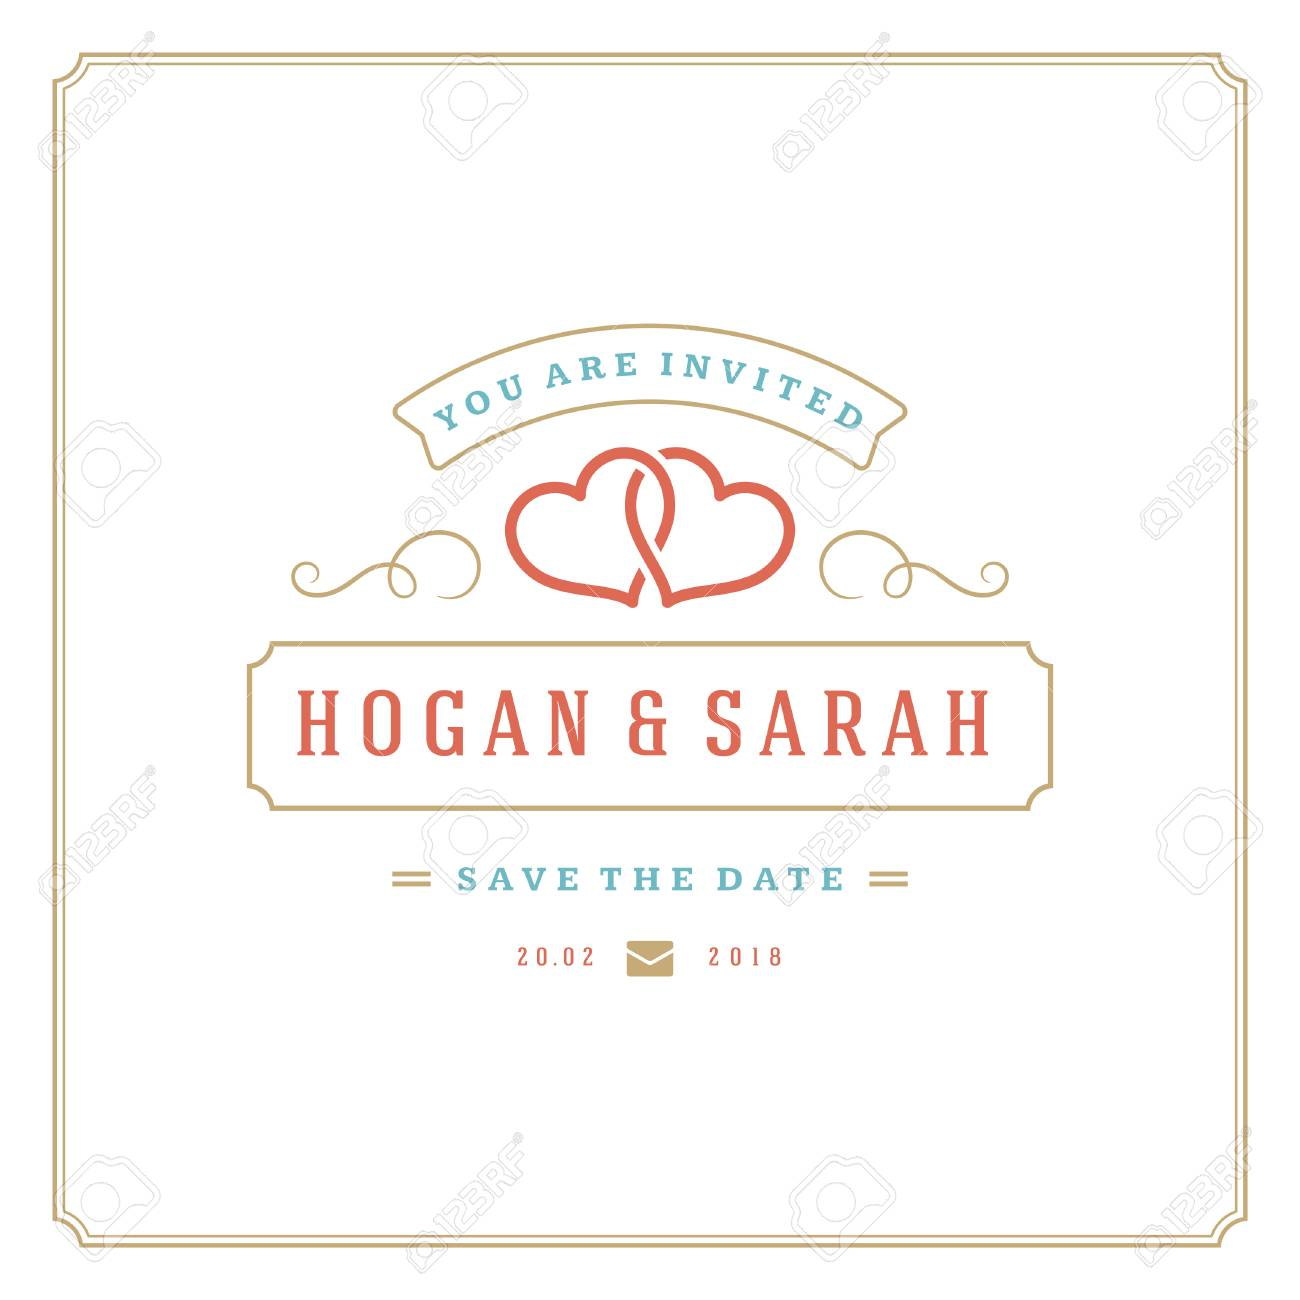 Wedding Save The Date Invitation Card Vector Illustration. Wedding ...